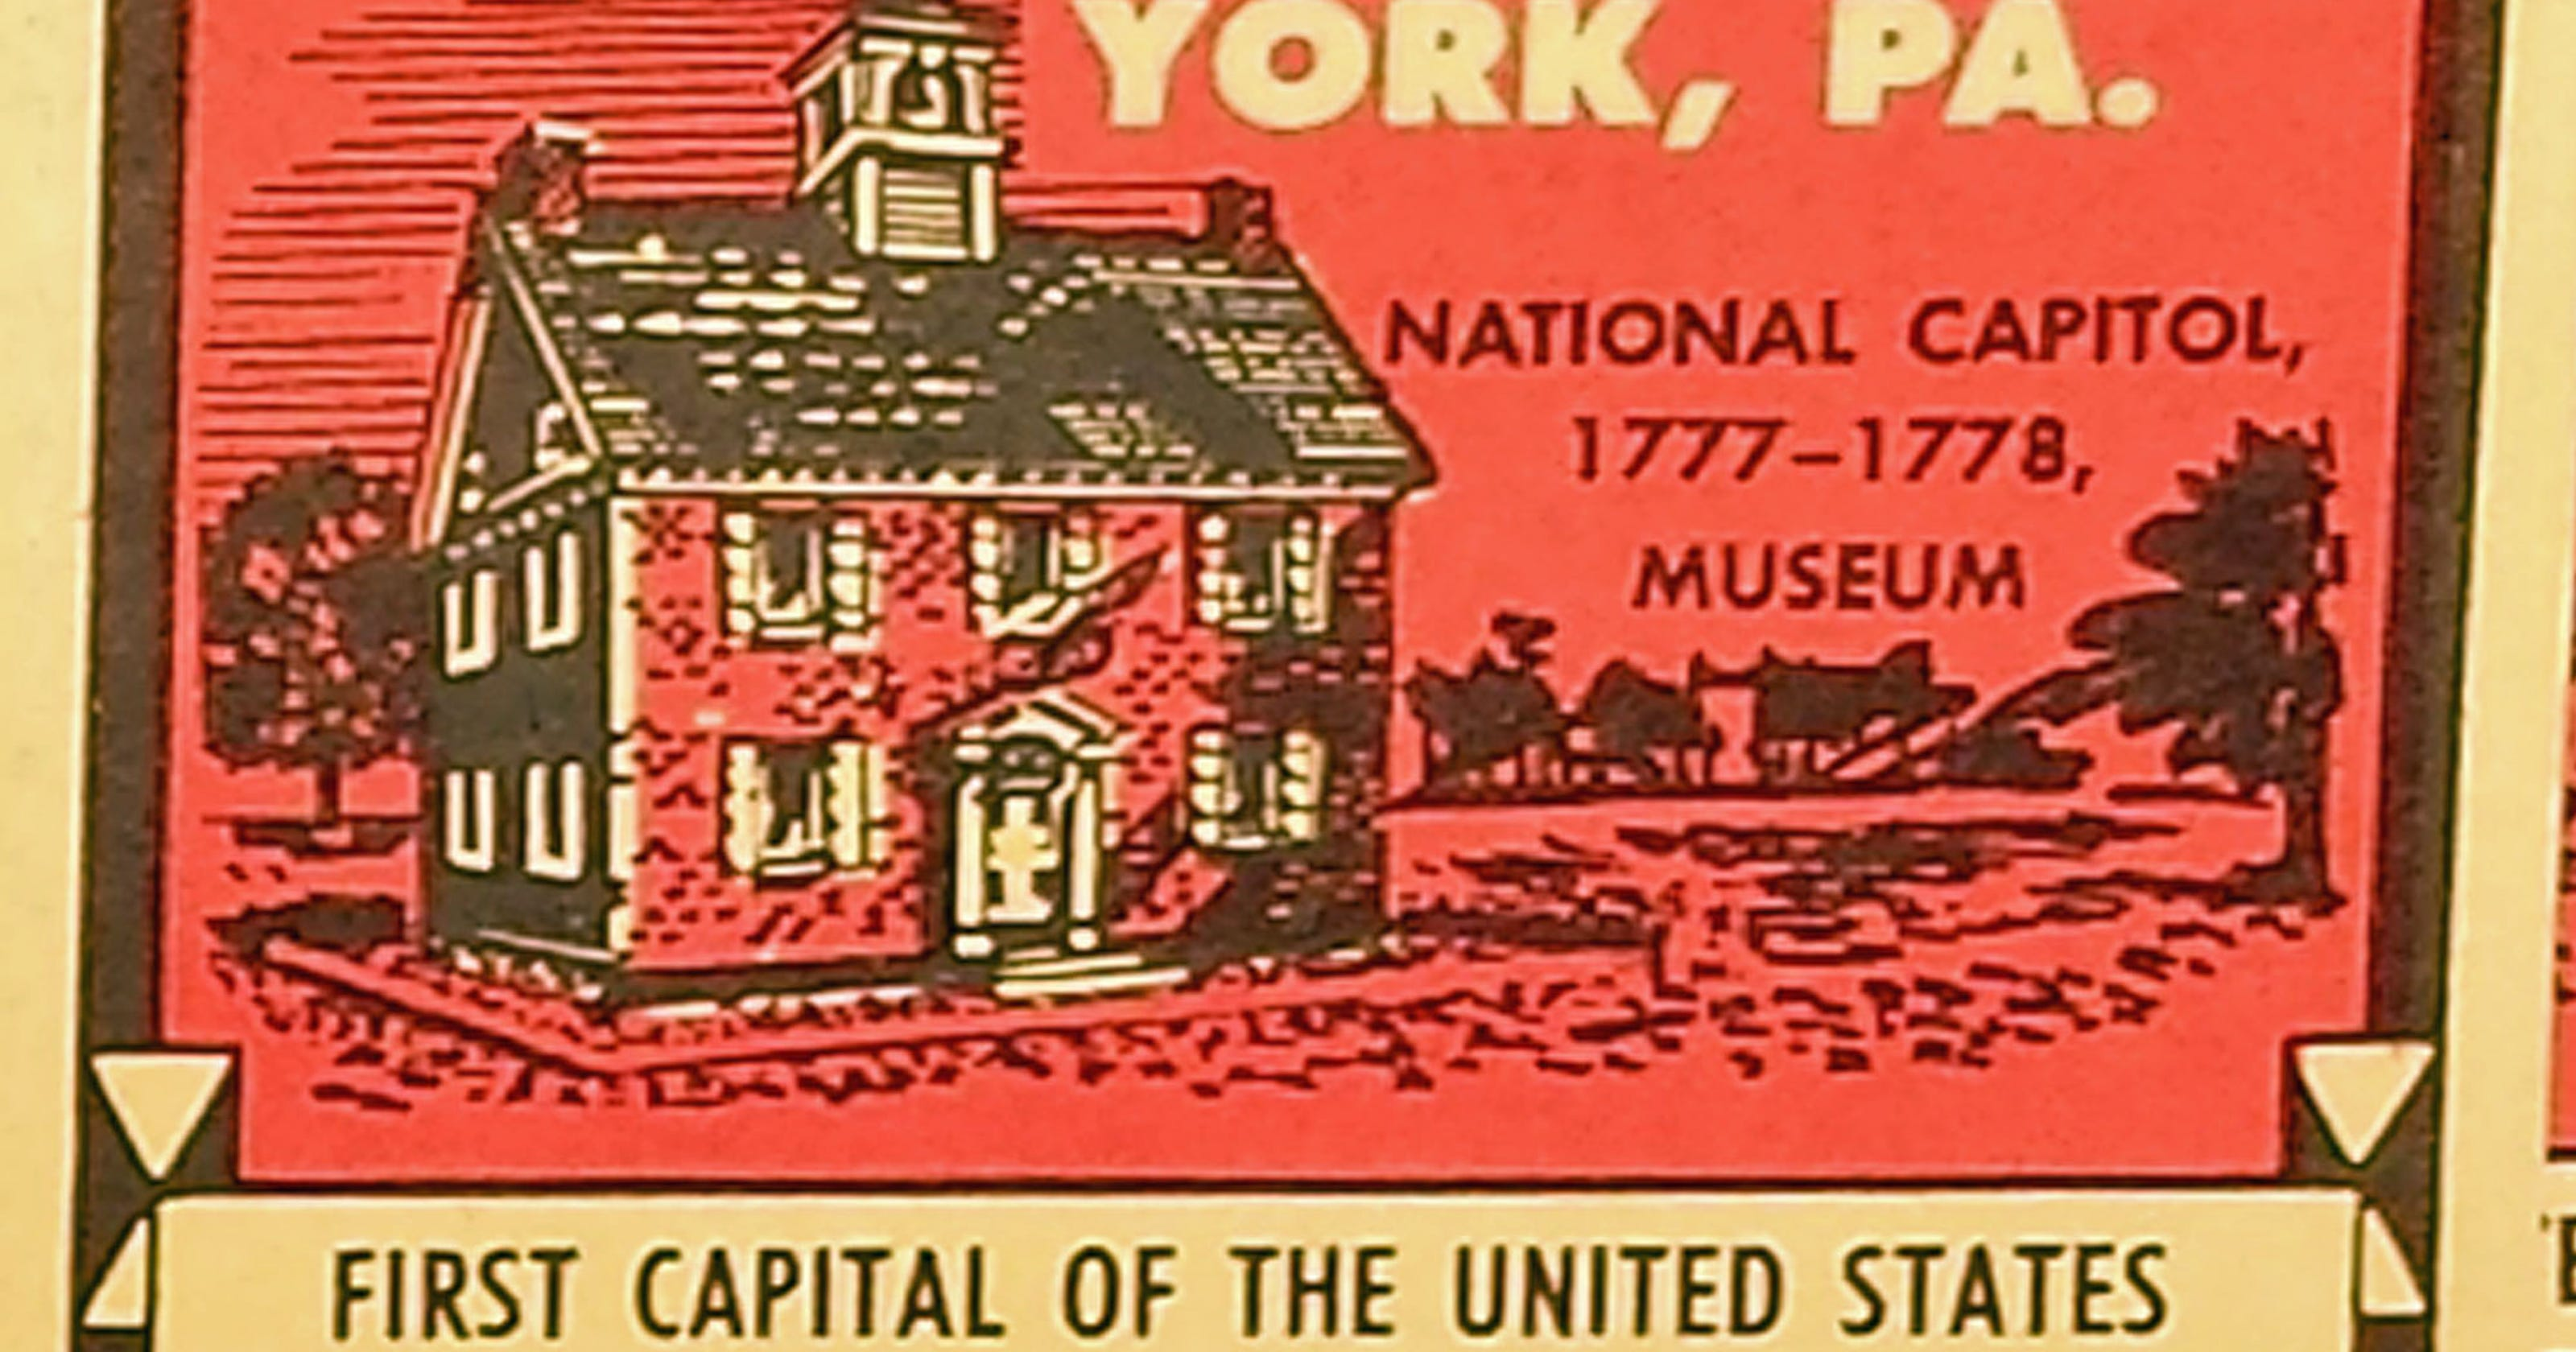 Whats This York The First Capital About